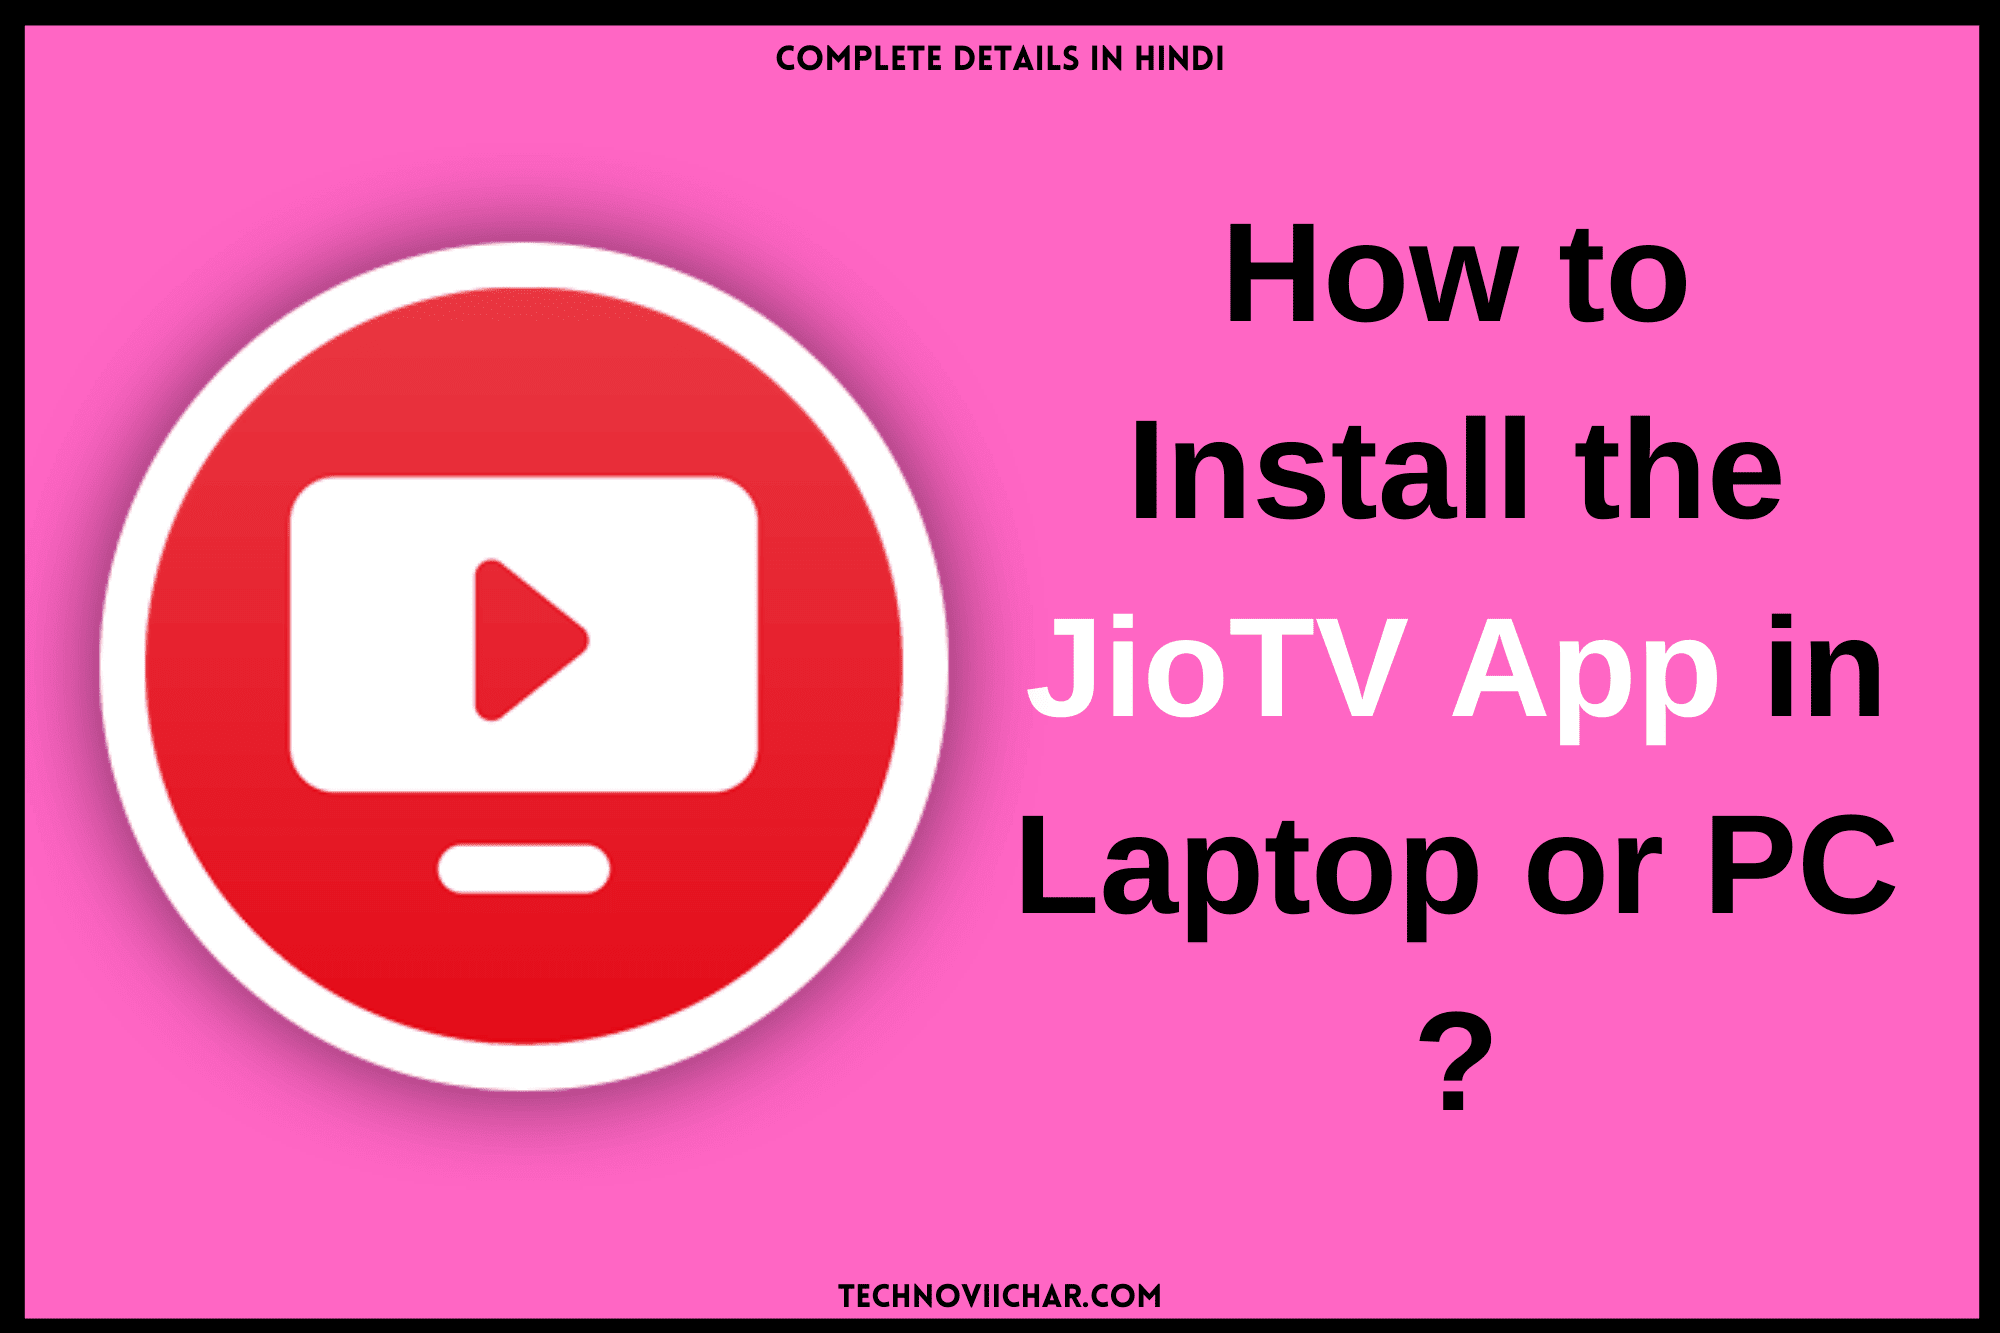 How to Install the JioTV App in Laptop or PC